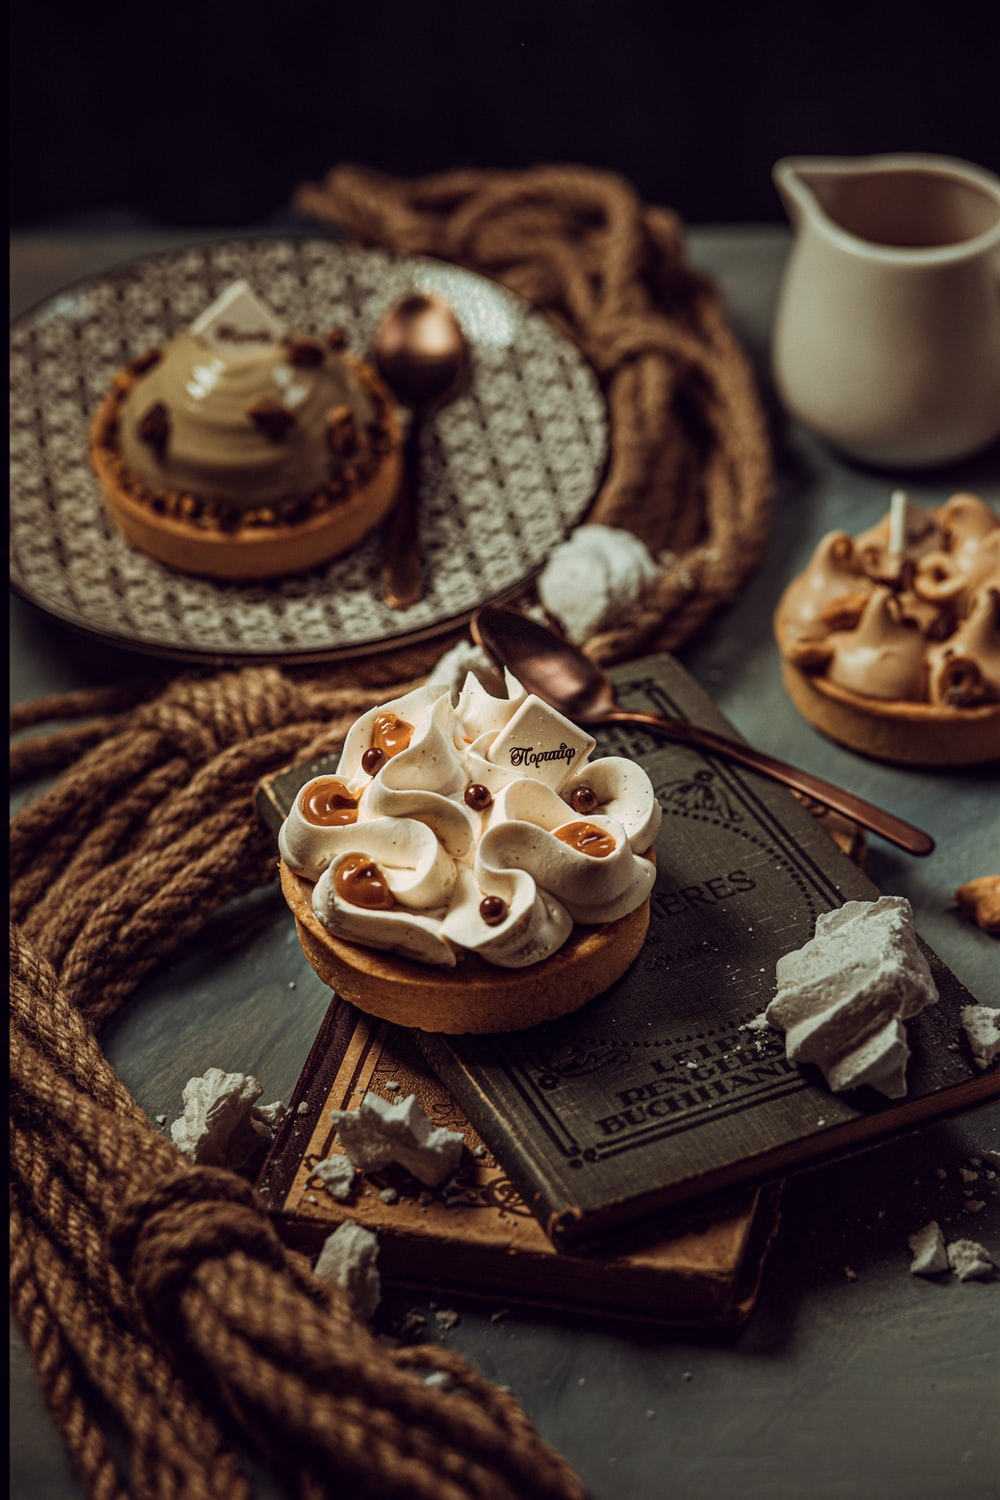 brown and white ceramic cup on brown wooden tray